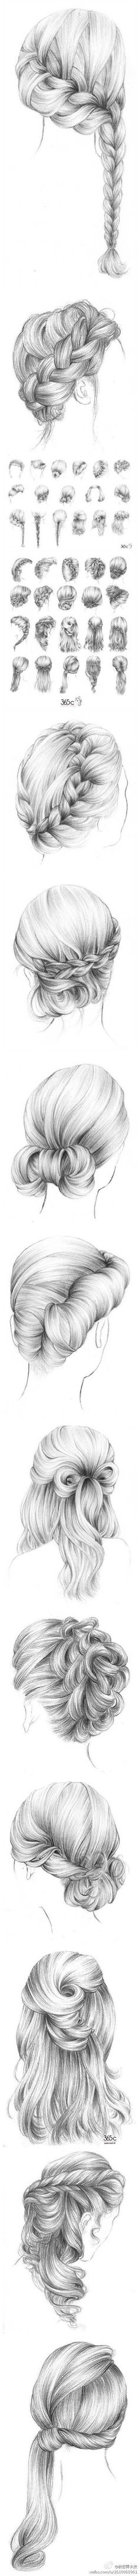 New Fashion Drawing Hair Sketch Ideas Drawing Tips, Drawing Reference, Drawing Sketches, Painting & Drawing, Drawing Ideas, Sketch Ideas, Drawing Drawing, Drawing Style, Sketching